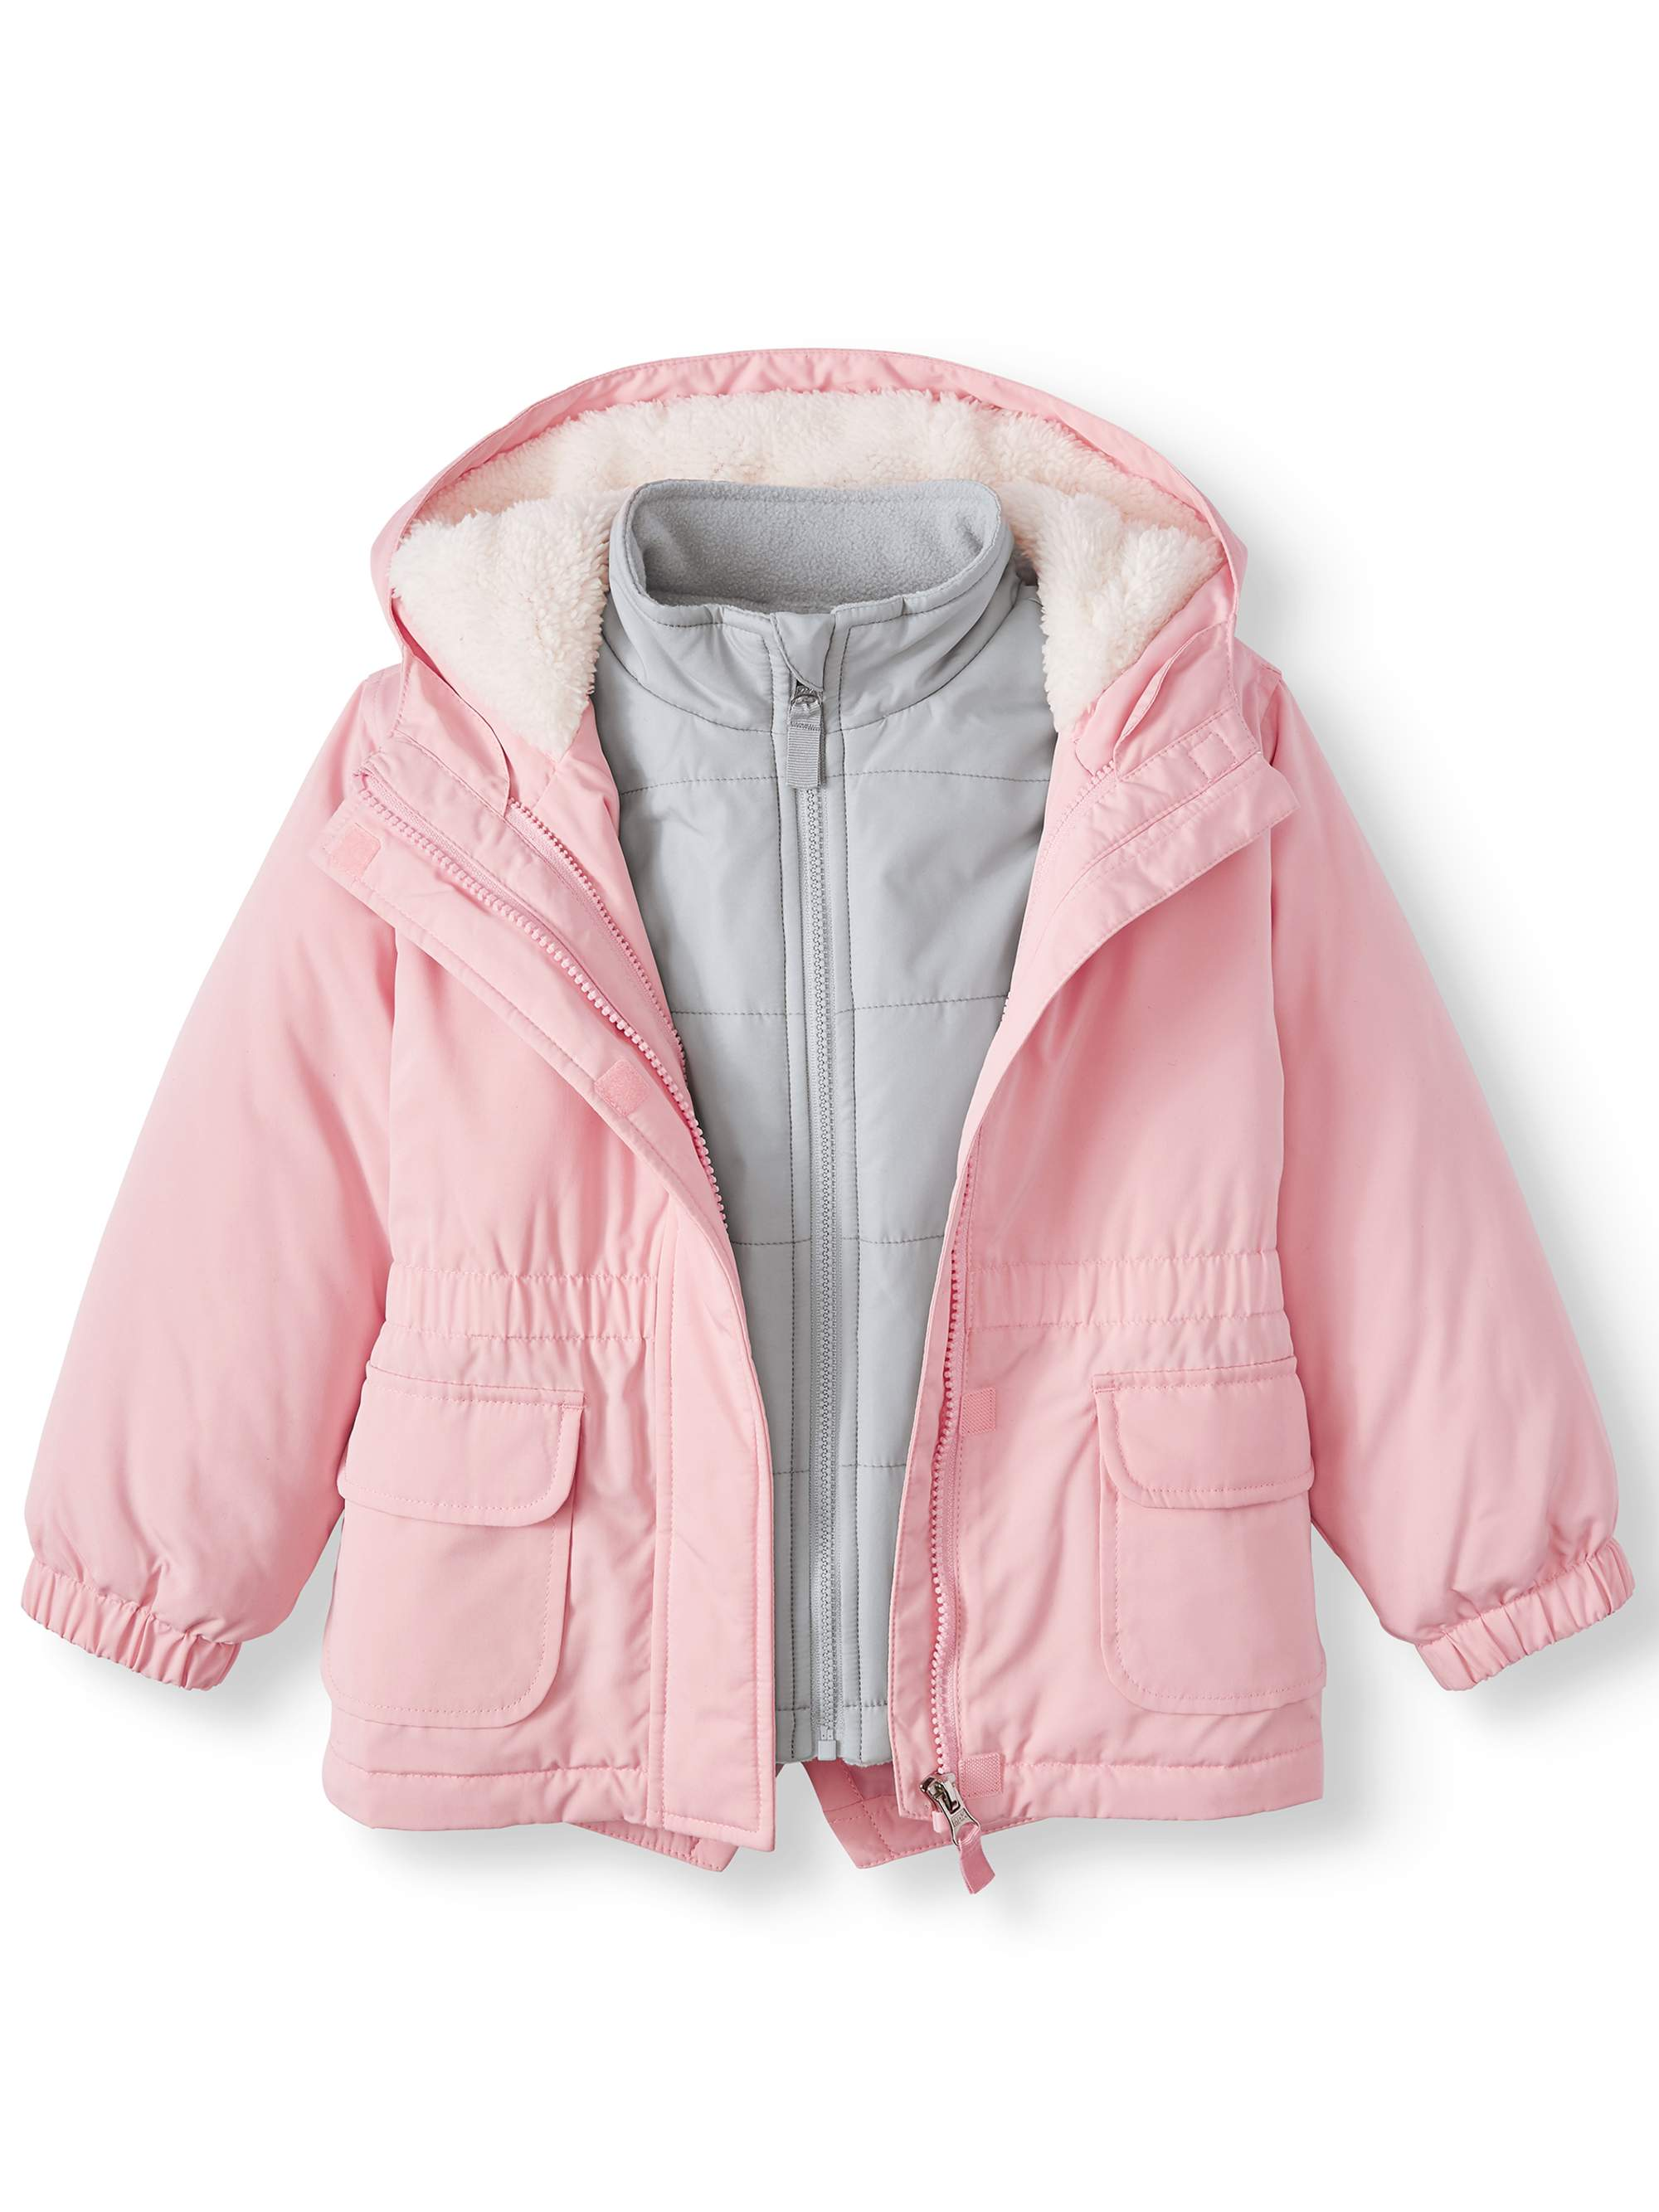 Wonder Nation Toddler Girl 3-in-1 Systems Jacket Coat